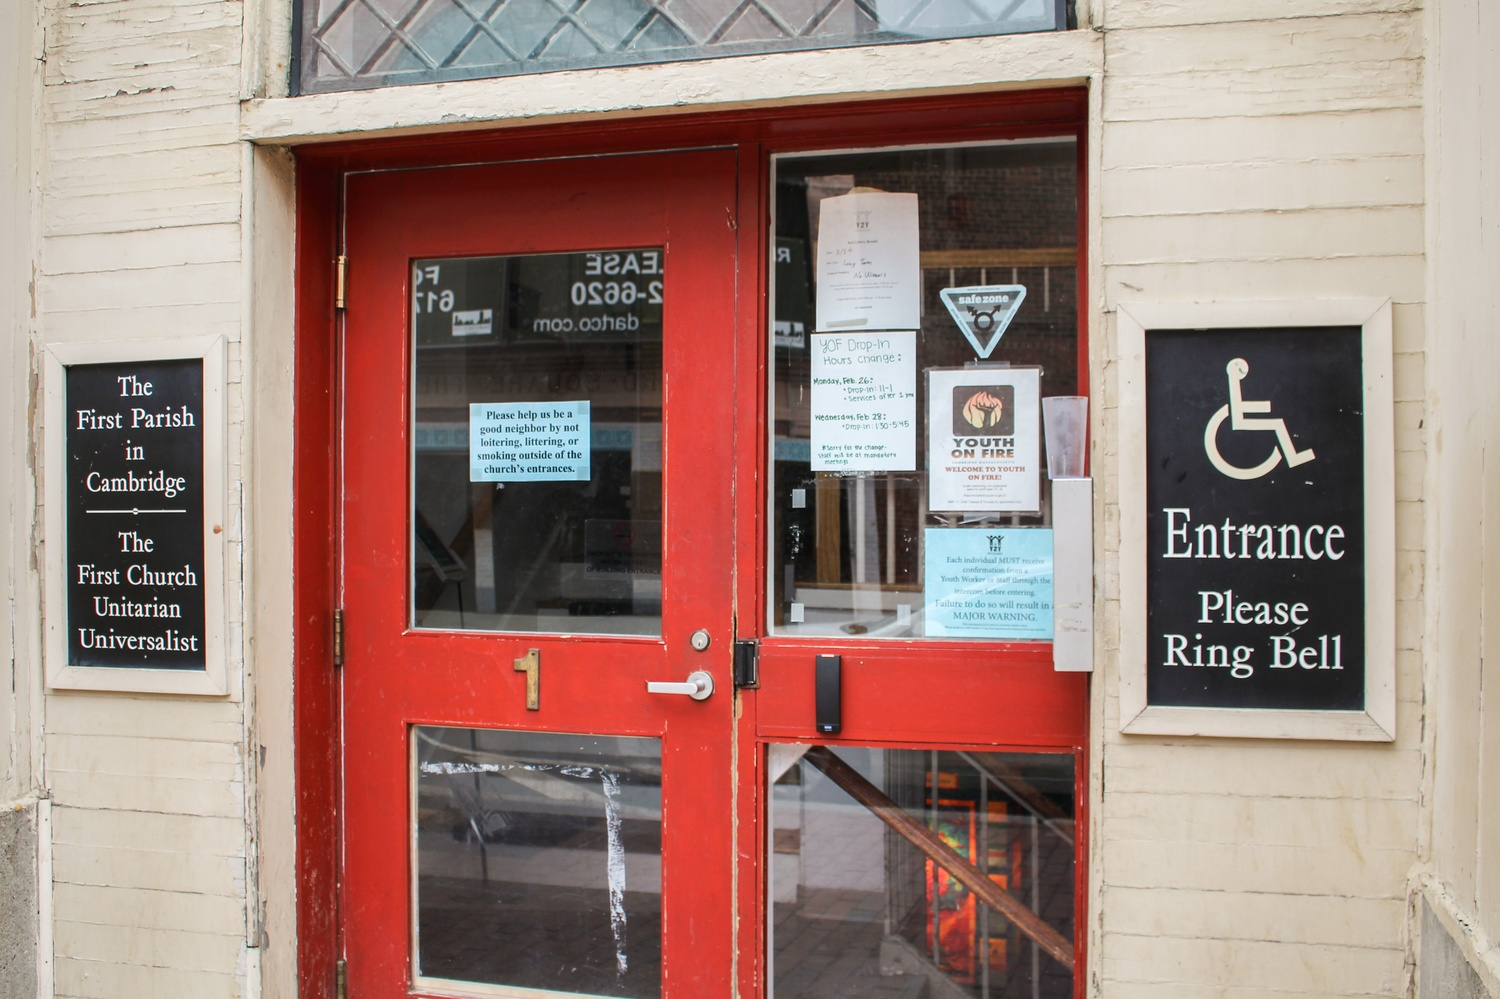 Y2Y, a shelter for homeless youth, is located in the basement of First Parish church in Harvard Square.